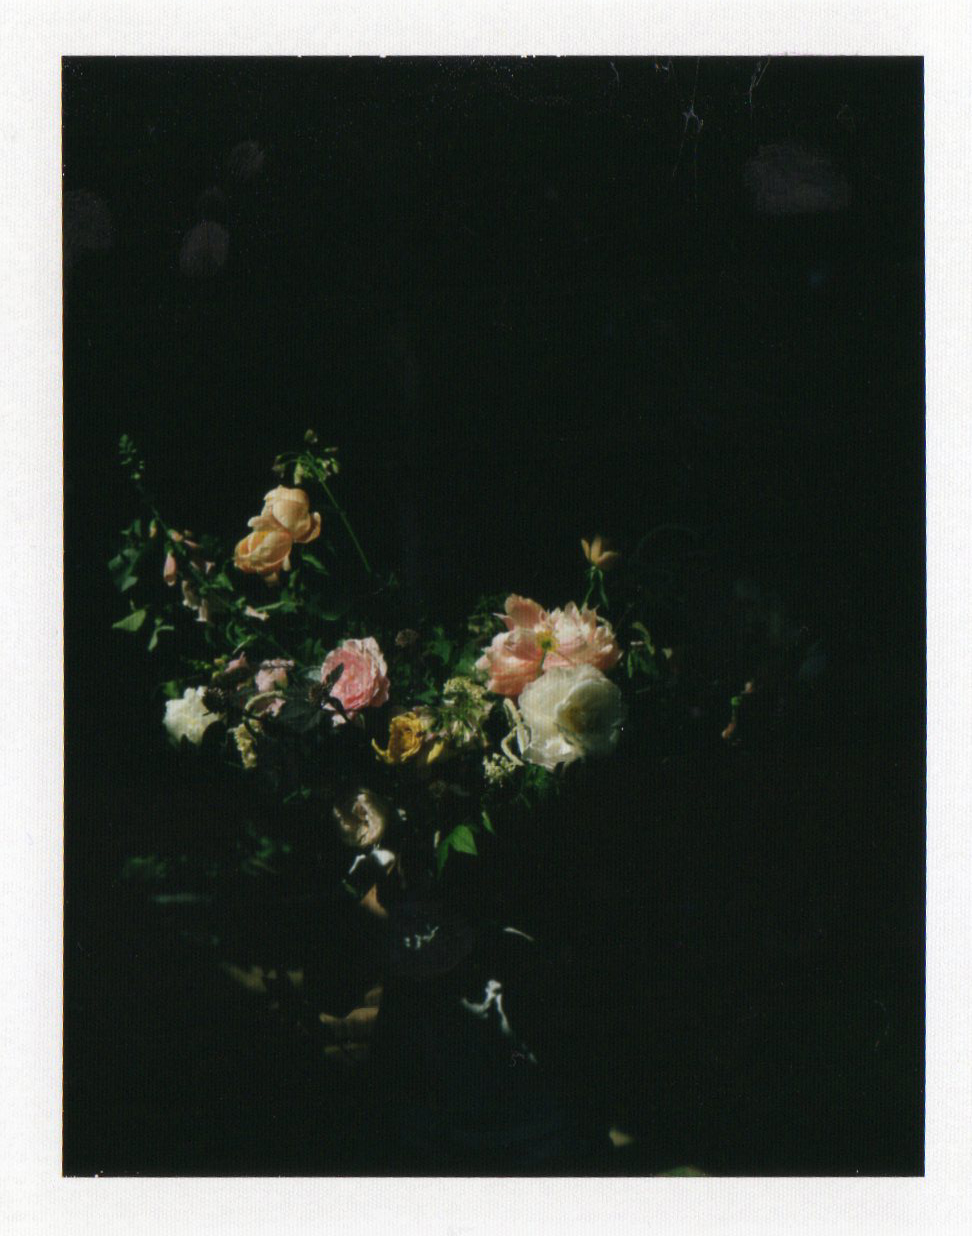 vervain polaroid vase image wedding flowers